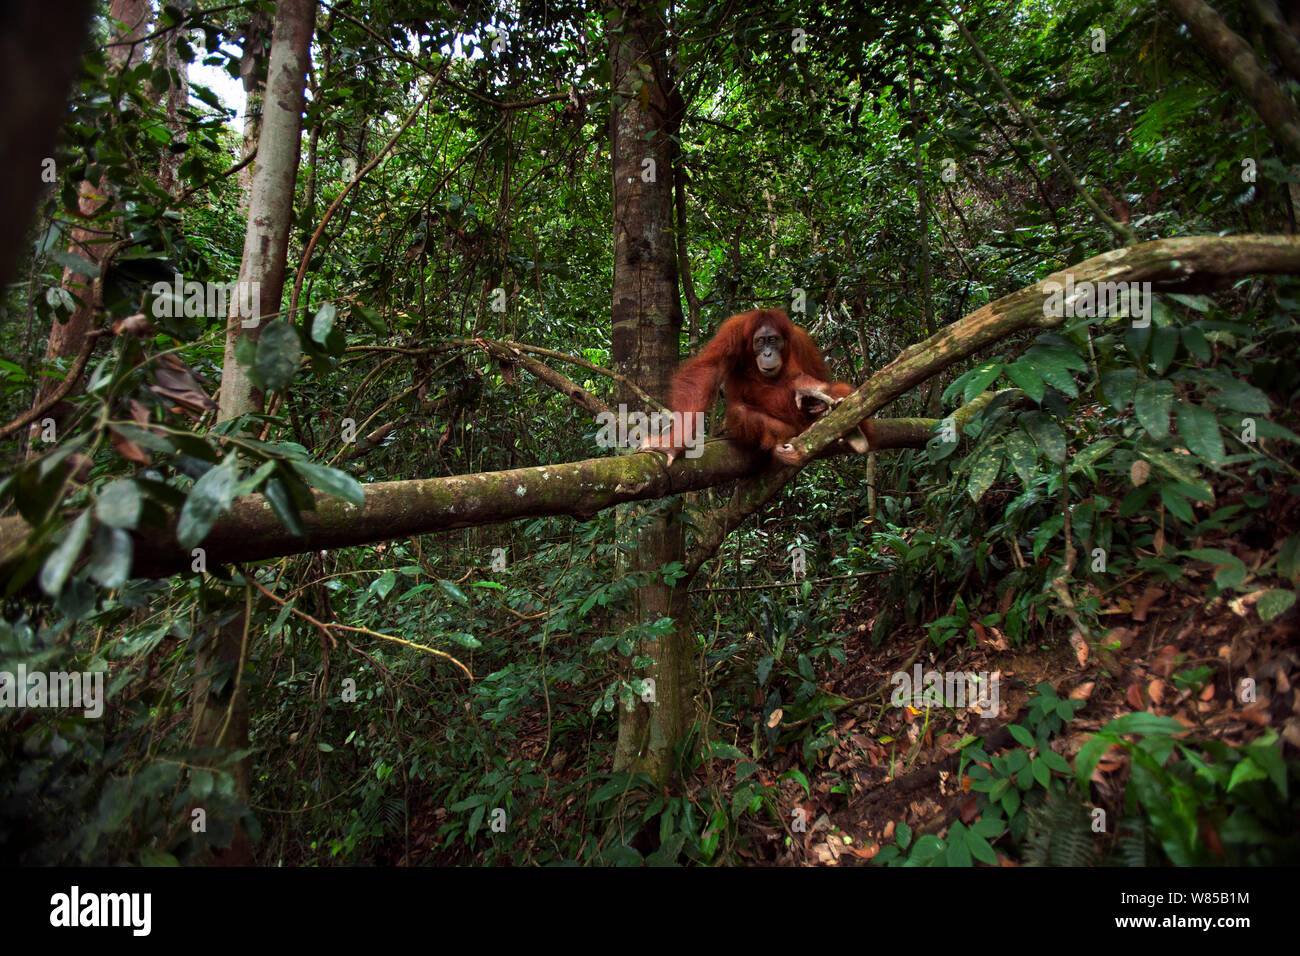 Sumatran orangutan (Pongo abelii) female 'Jaki' aged 16 years resting on a fallen tree. Gunung Leuser National Park, Sumatra, Indonesia. Rehabilitated and released (or descended from those which were released) between 1973 and 1995. Stock Photo